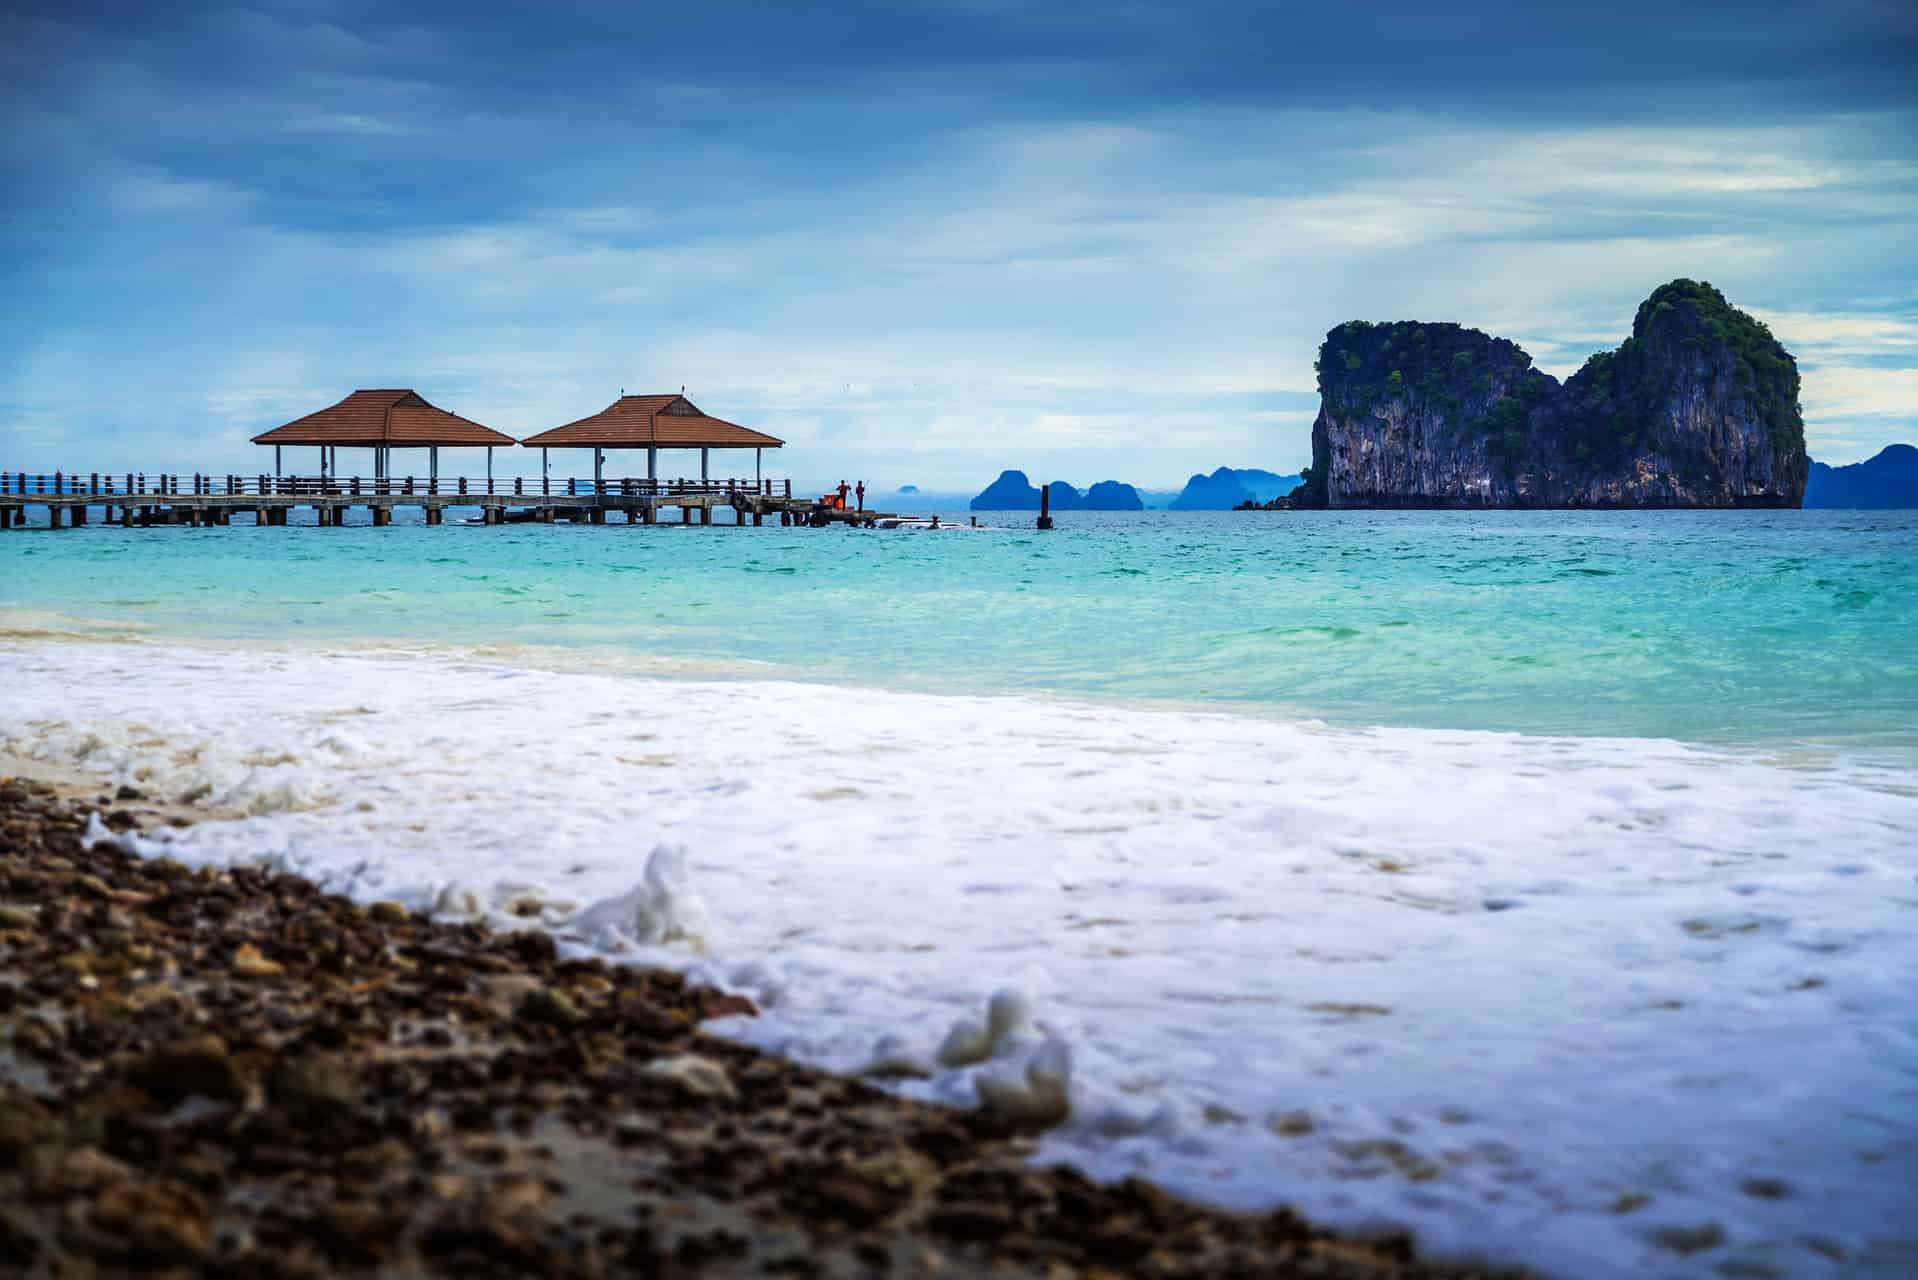 Andaman Sea View In Koh Ngai Island In Thailand